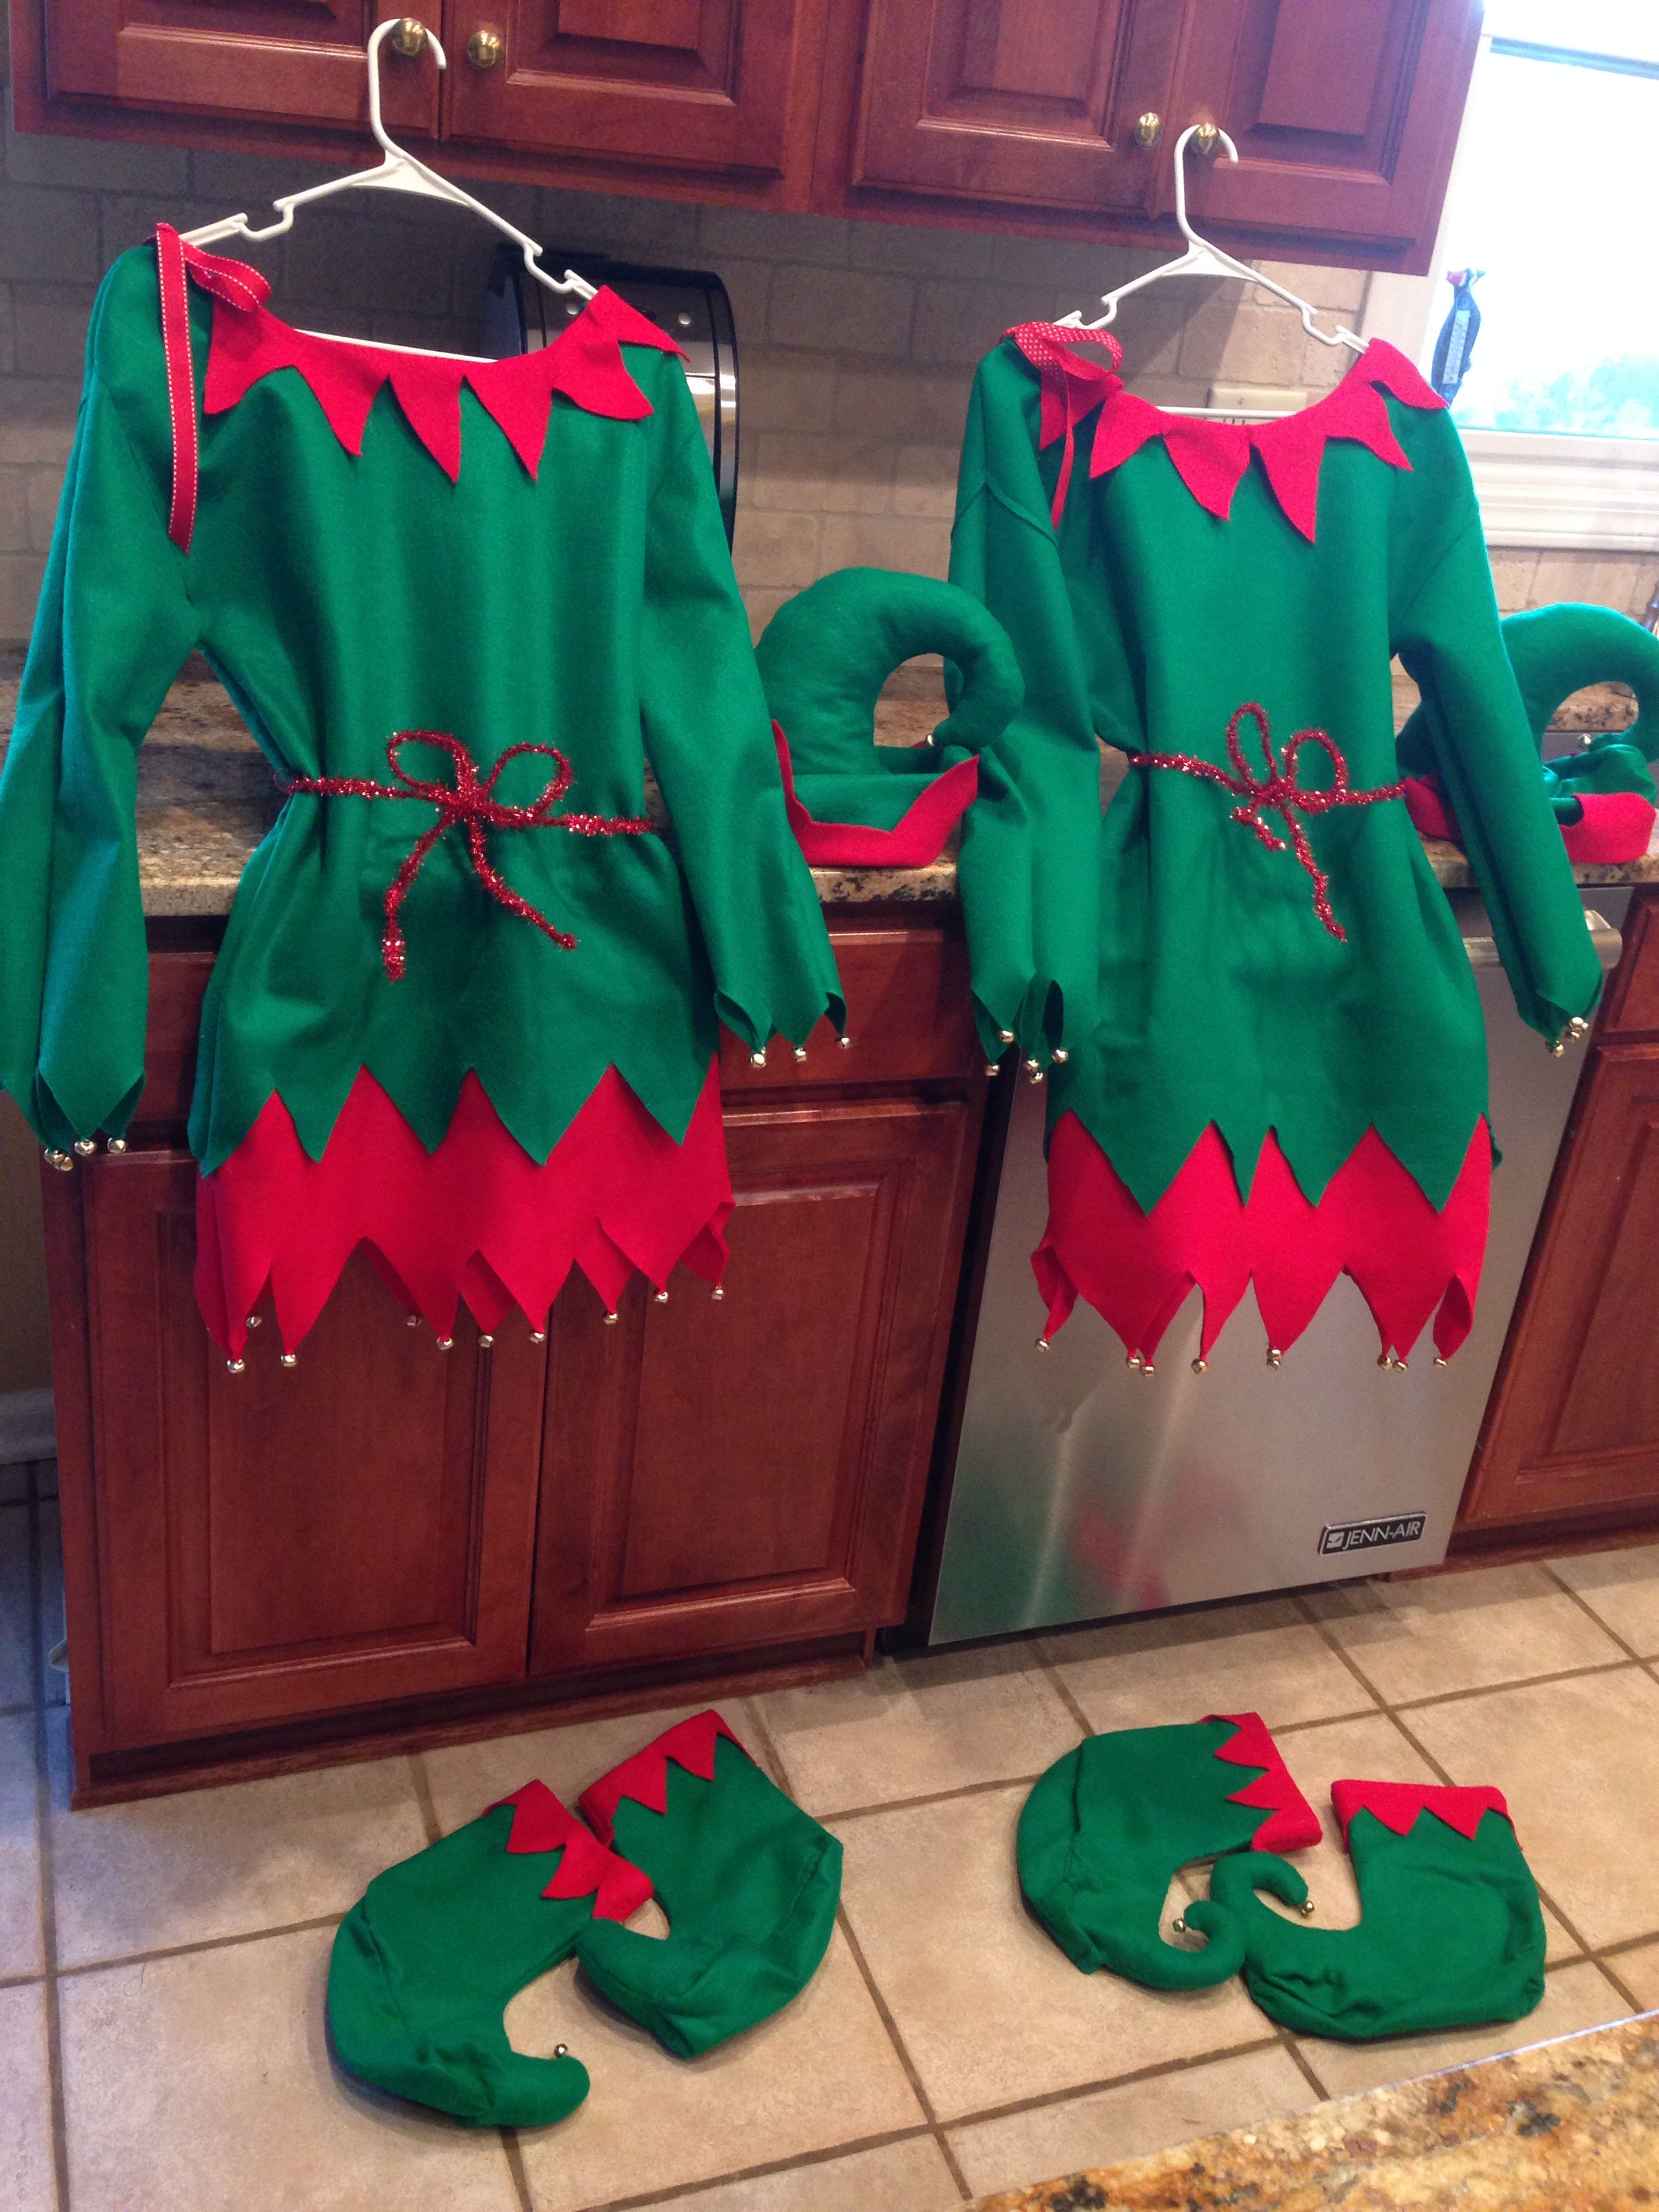 Elf Costumes Teaggy needs to be Elfed! For Teaggy